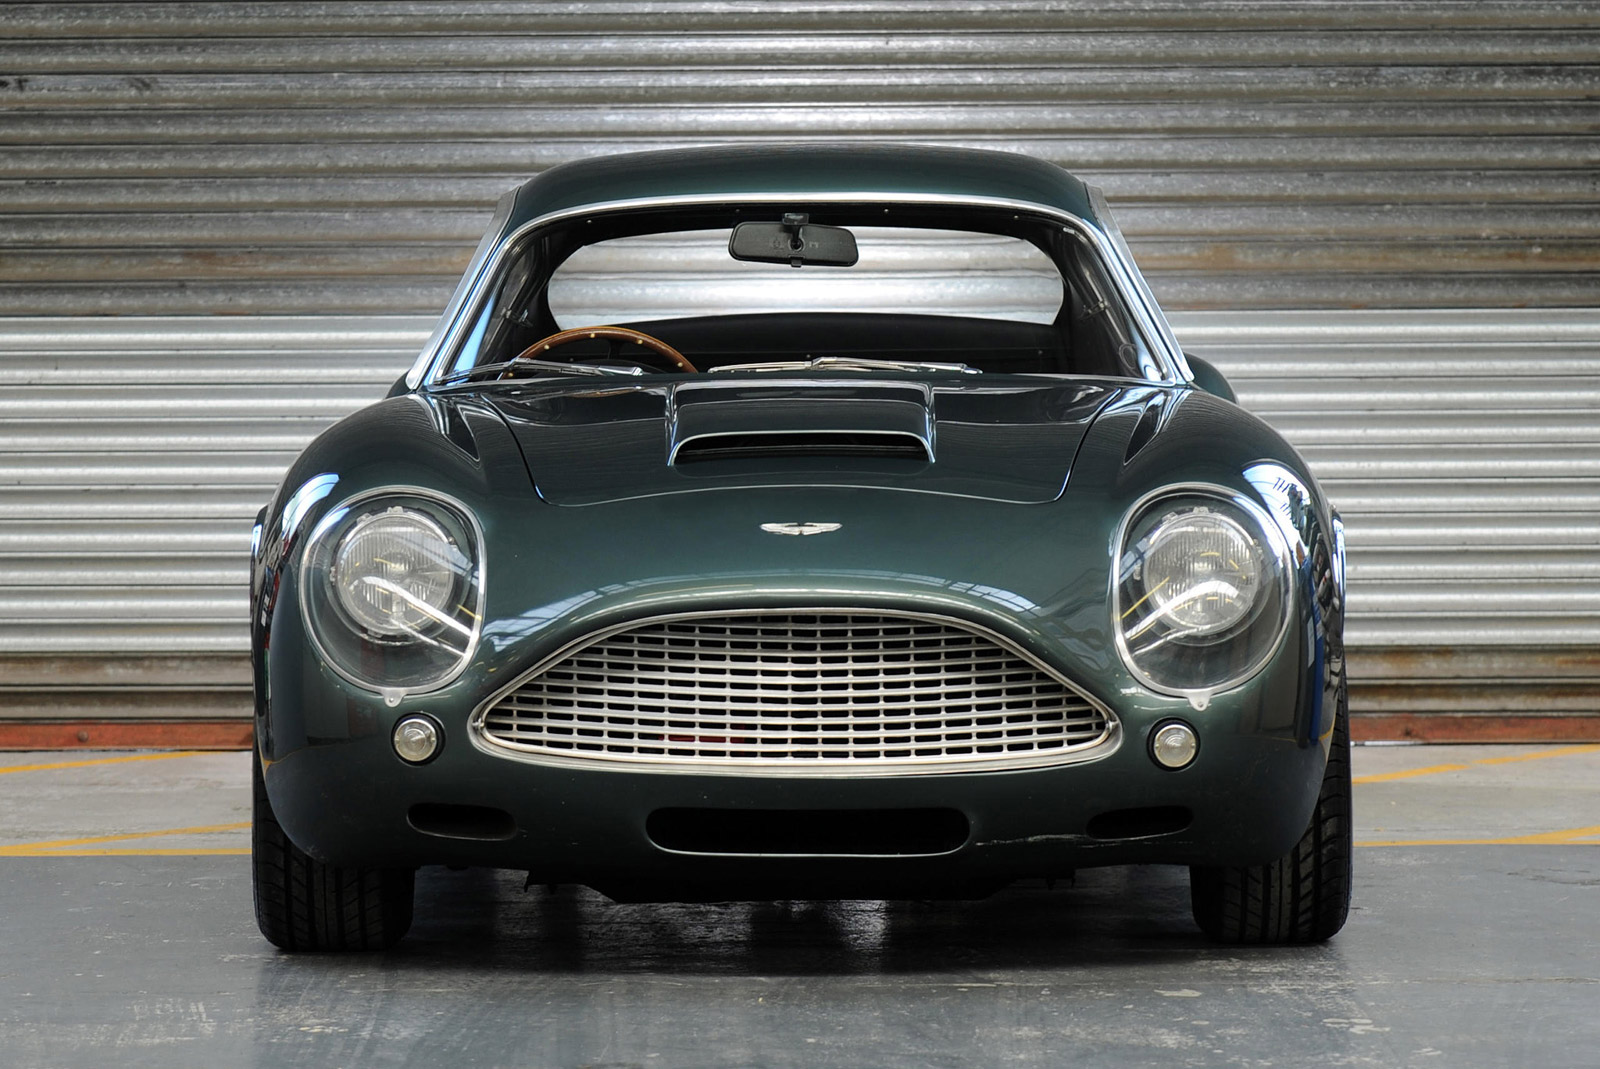 rare aston martin db4 gt zagato sells for 1 9 million. Black Bedroom Furniture Sets. Home Design Ideas